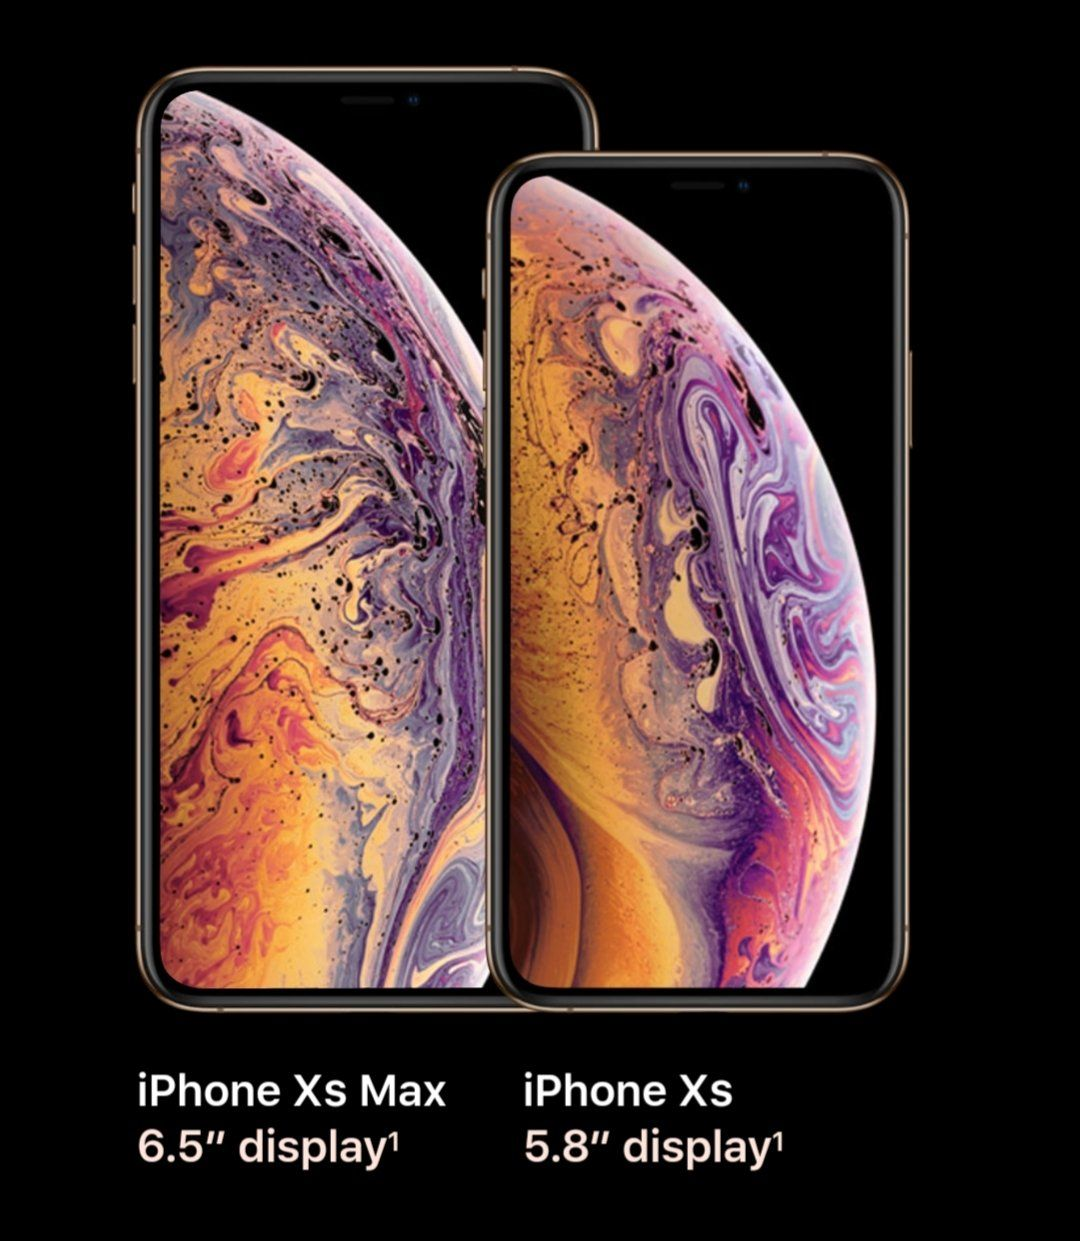 Full Specs Apple Unveils New iPhone Xs, iPhone Xs Max